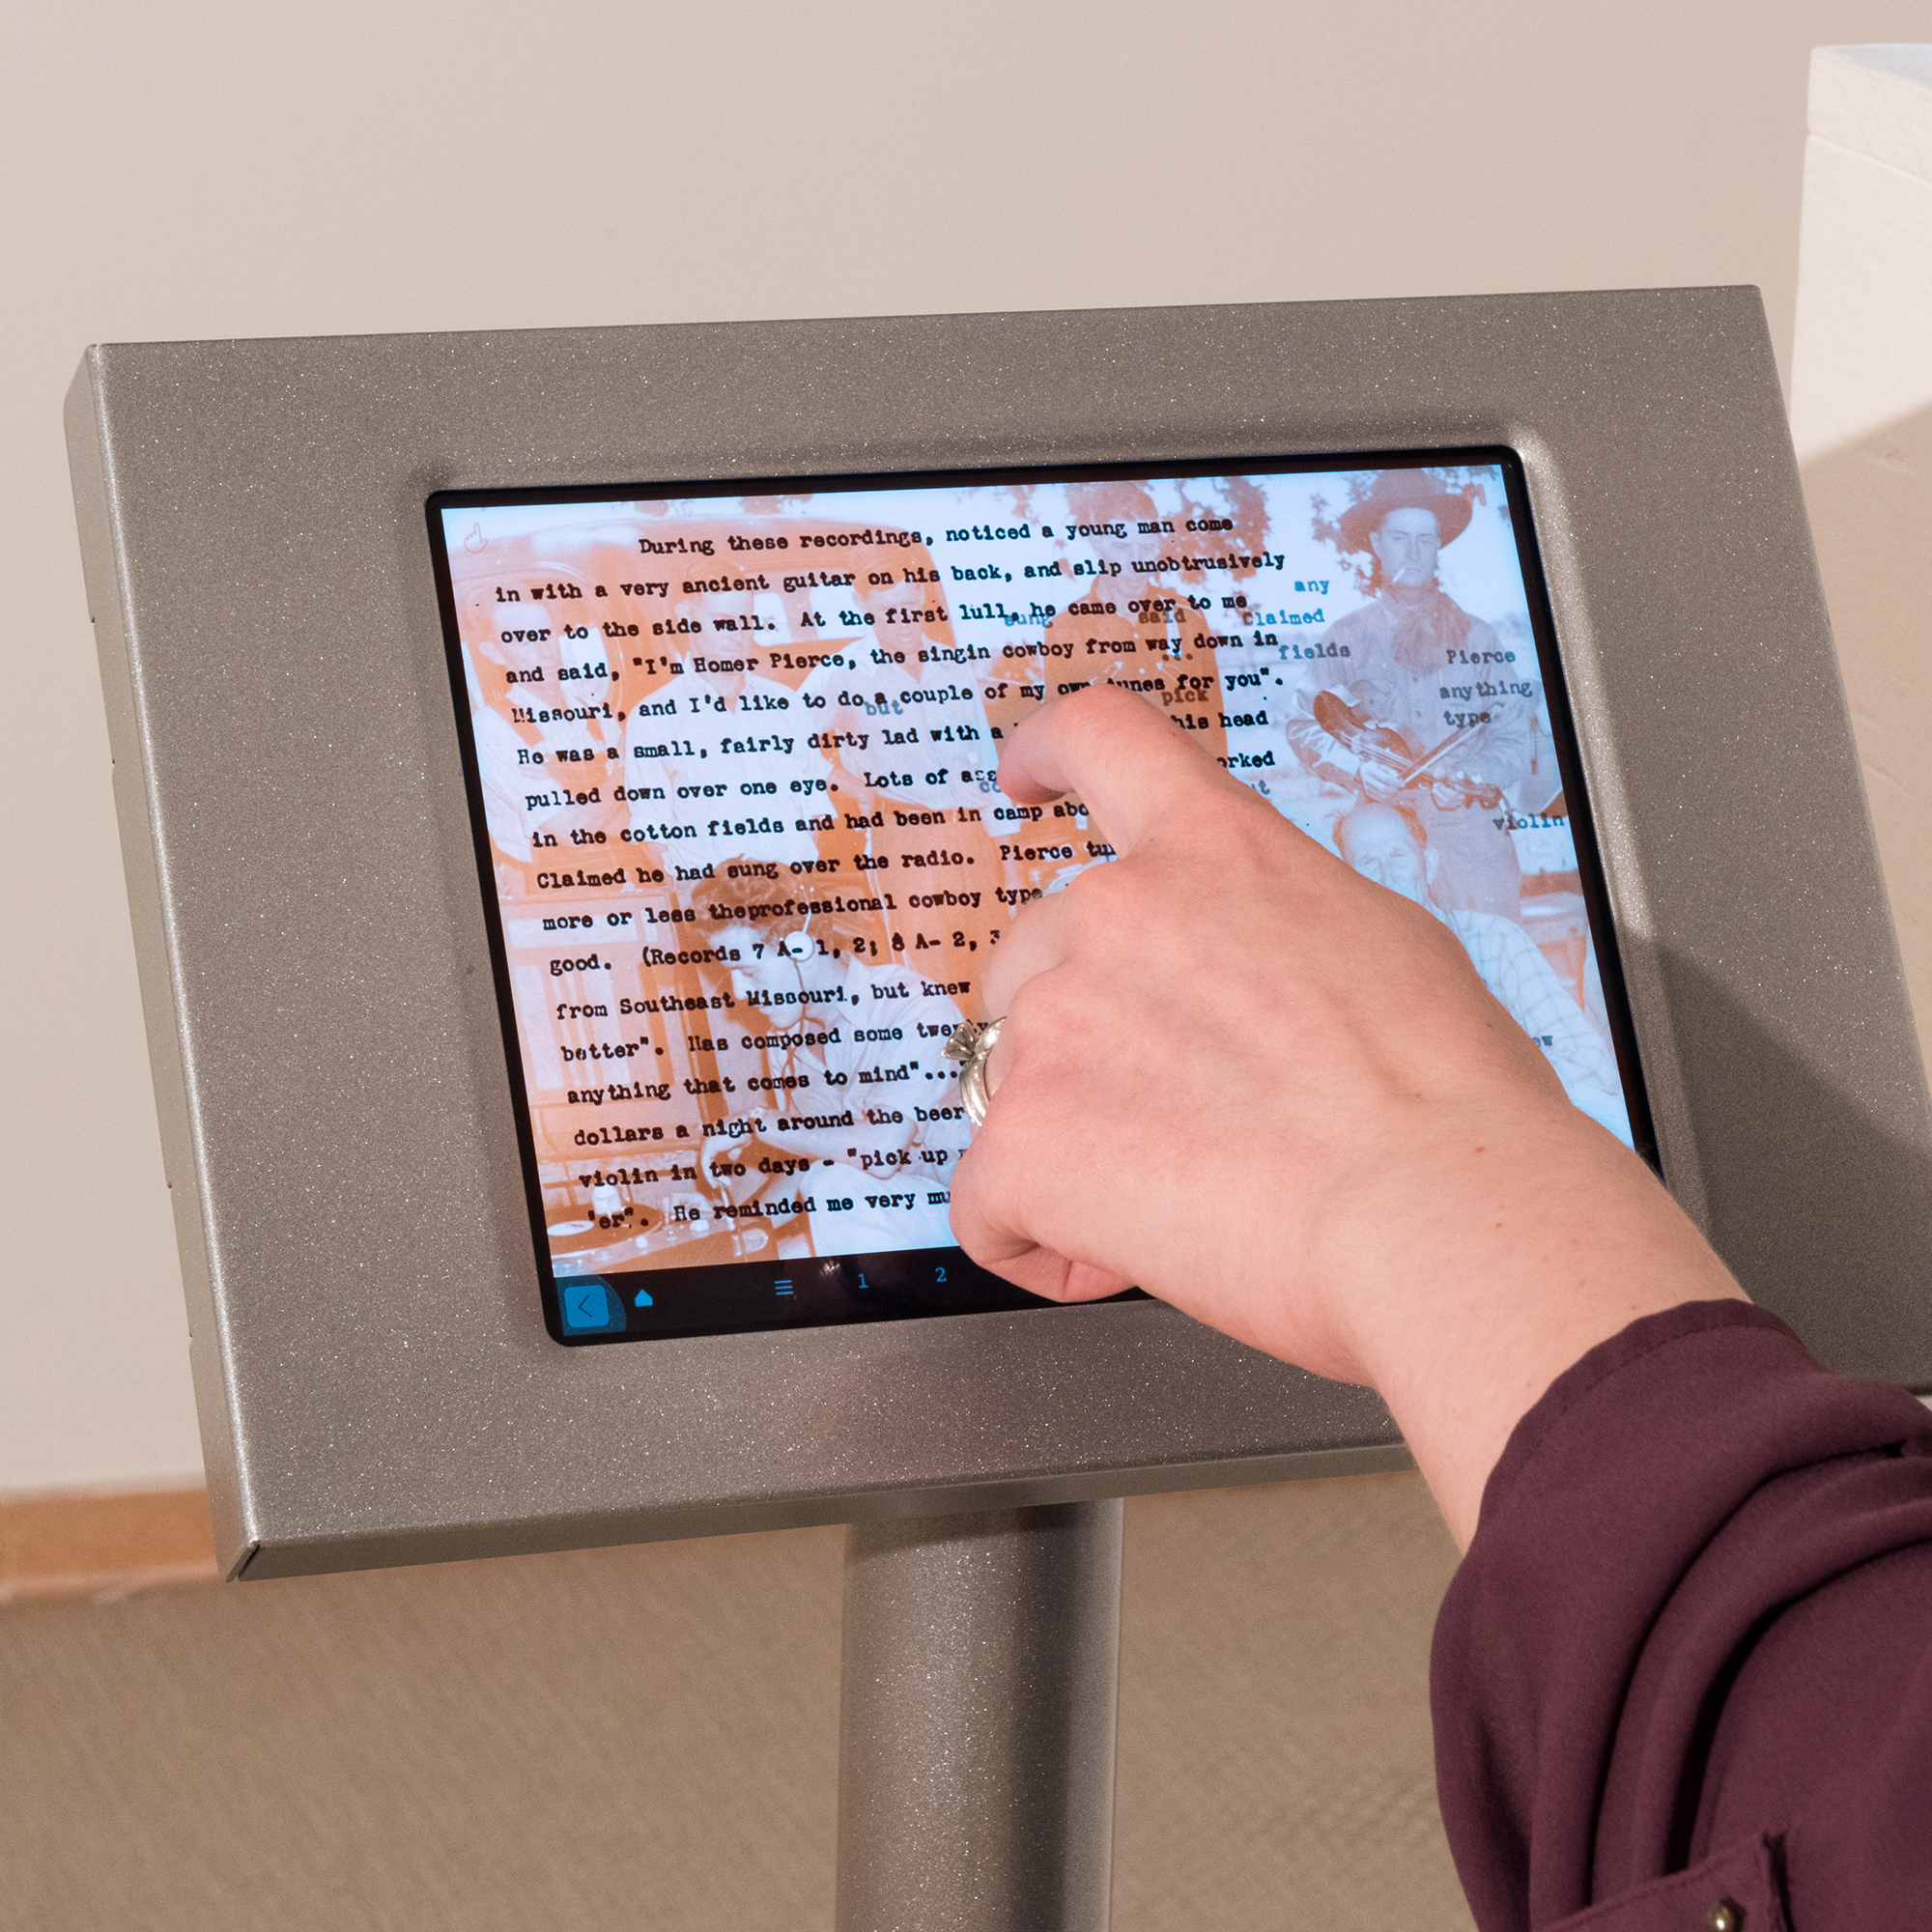 A hand touches an ipad in a stand